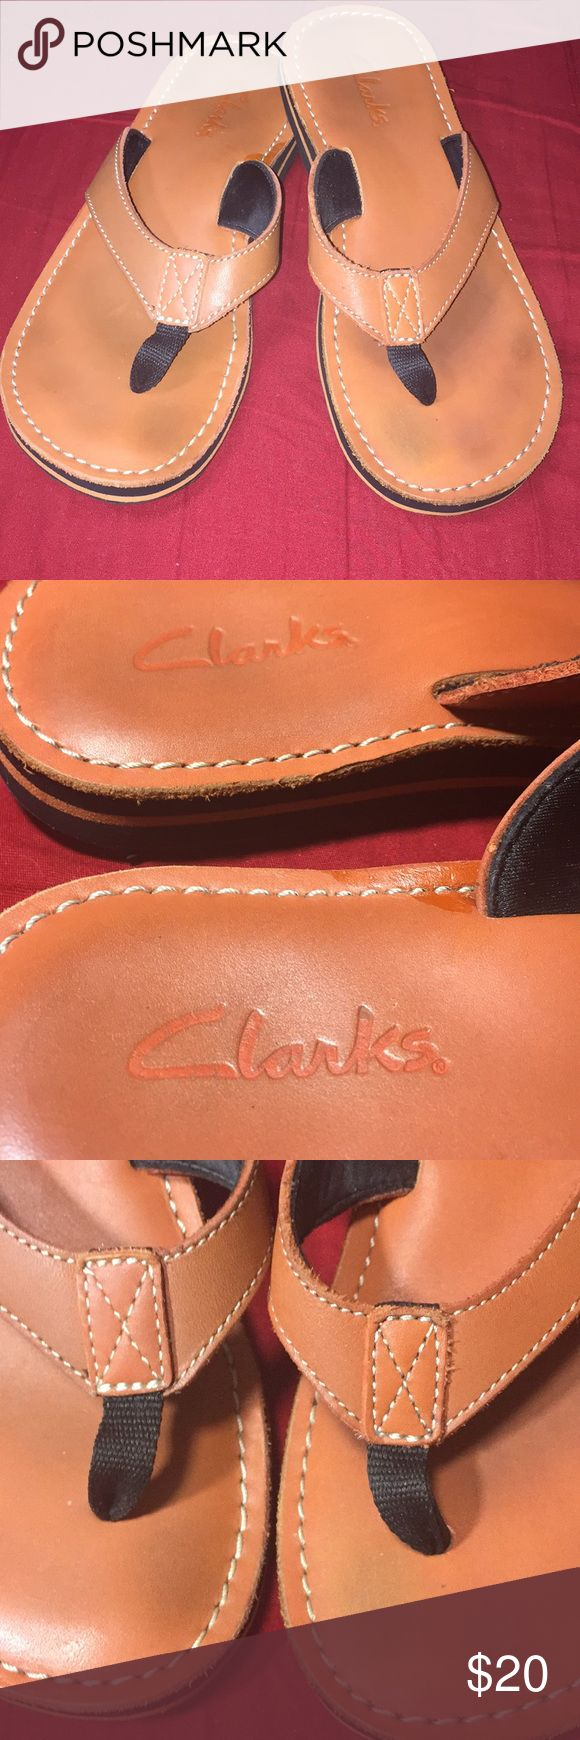 Tan leather Clarks sandals. Size 6 leather thong sandals. Top is leather, sole is man made material. Tan/orange over the top & black soles. Worn but have lots of life left in them. Clarks Shoes Sandals